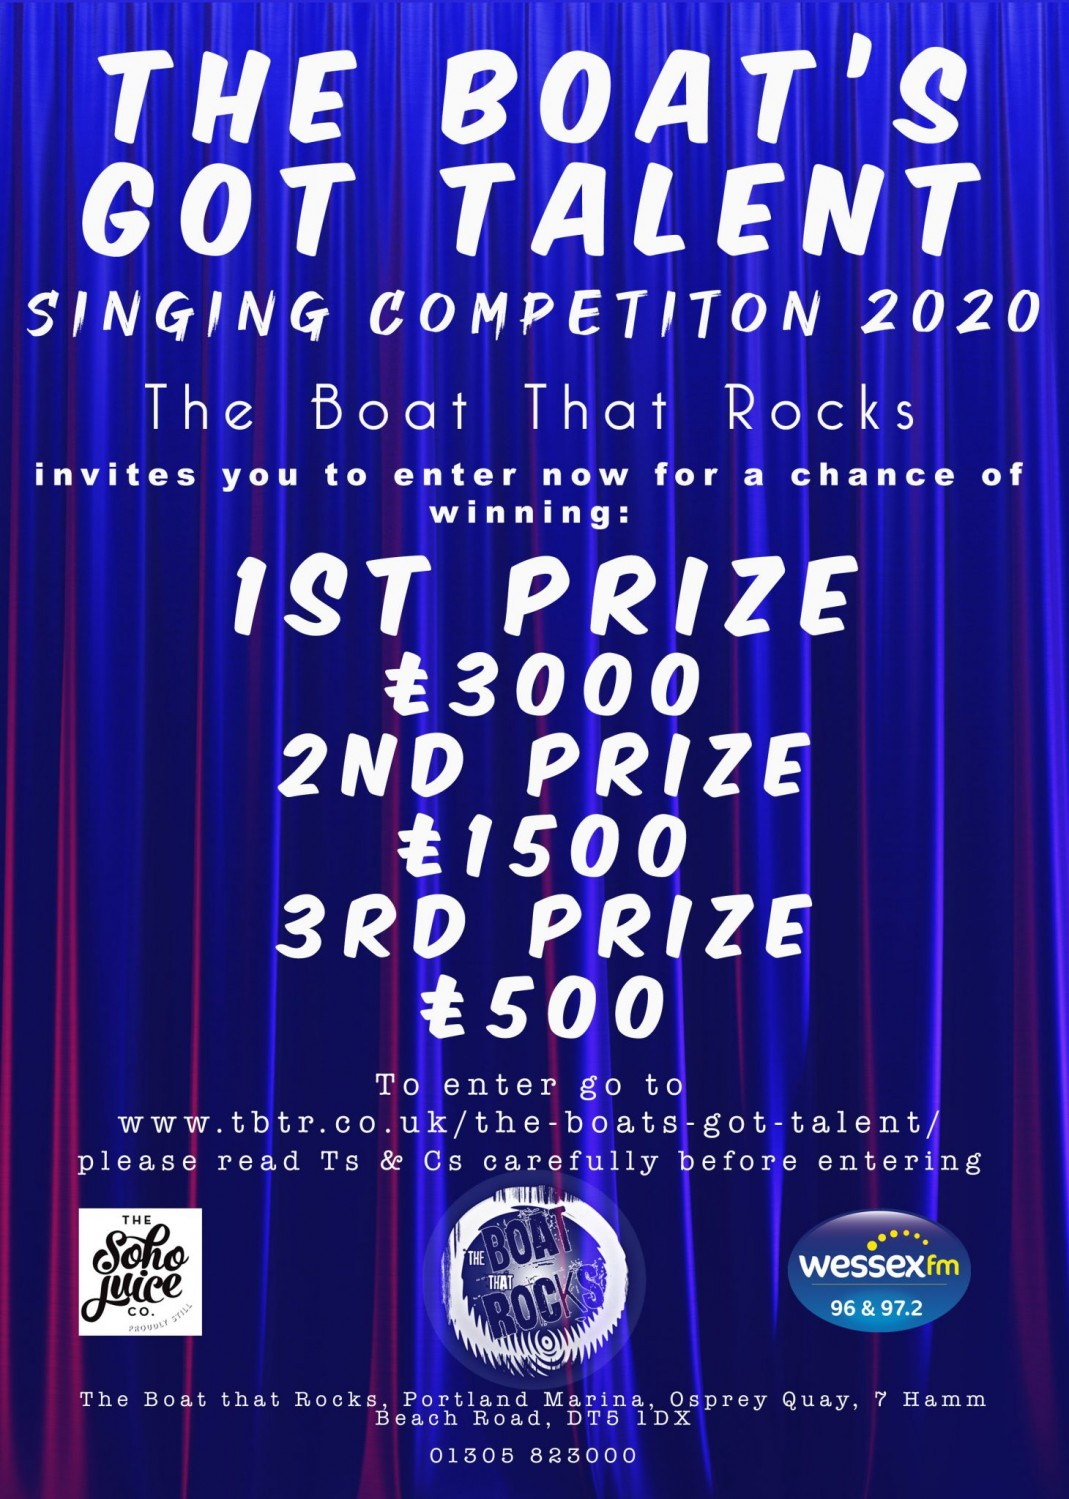 The Boat's Got Talent 2020